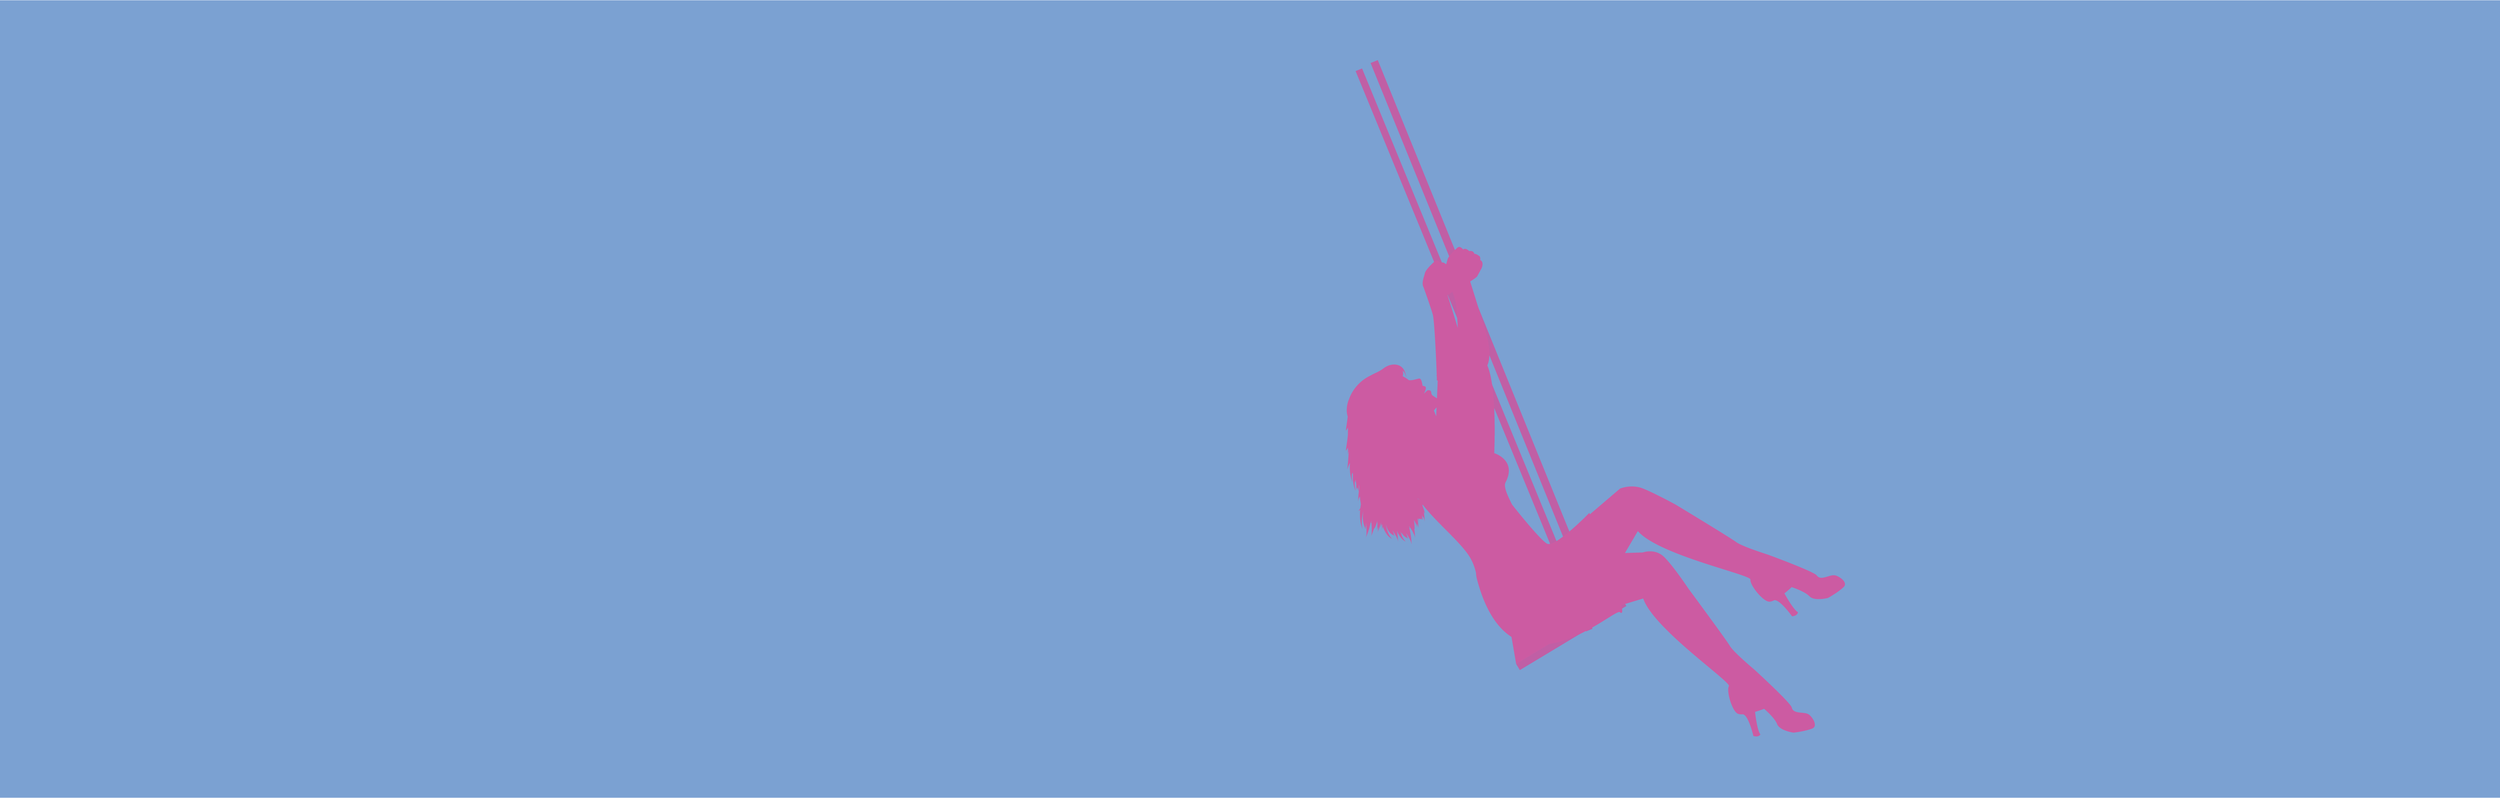 Lady in pink with blue background.png